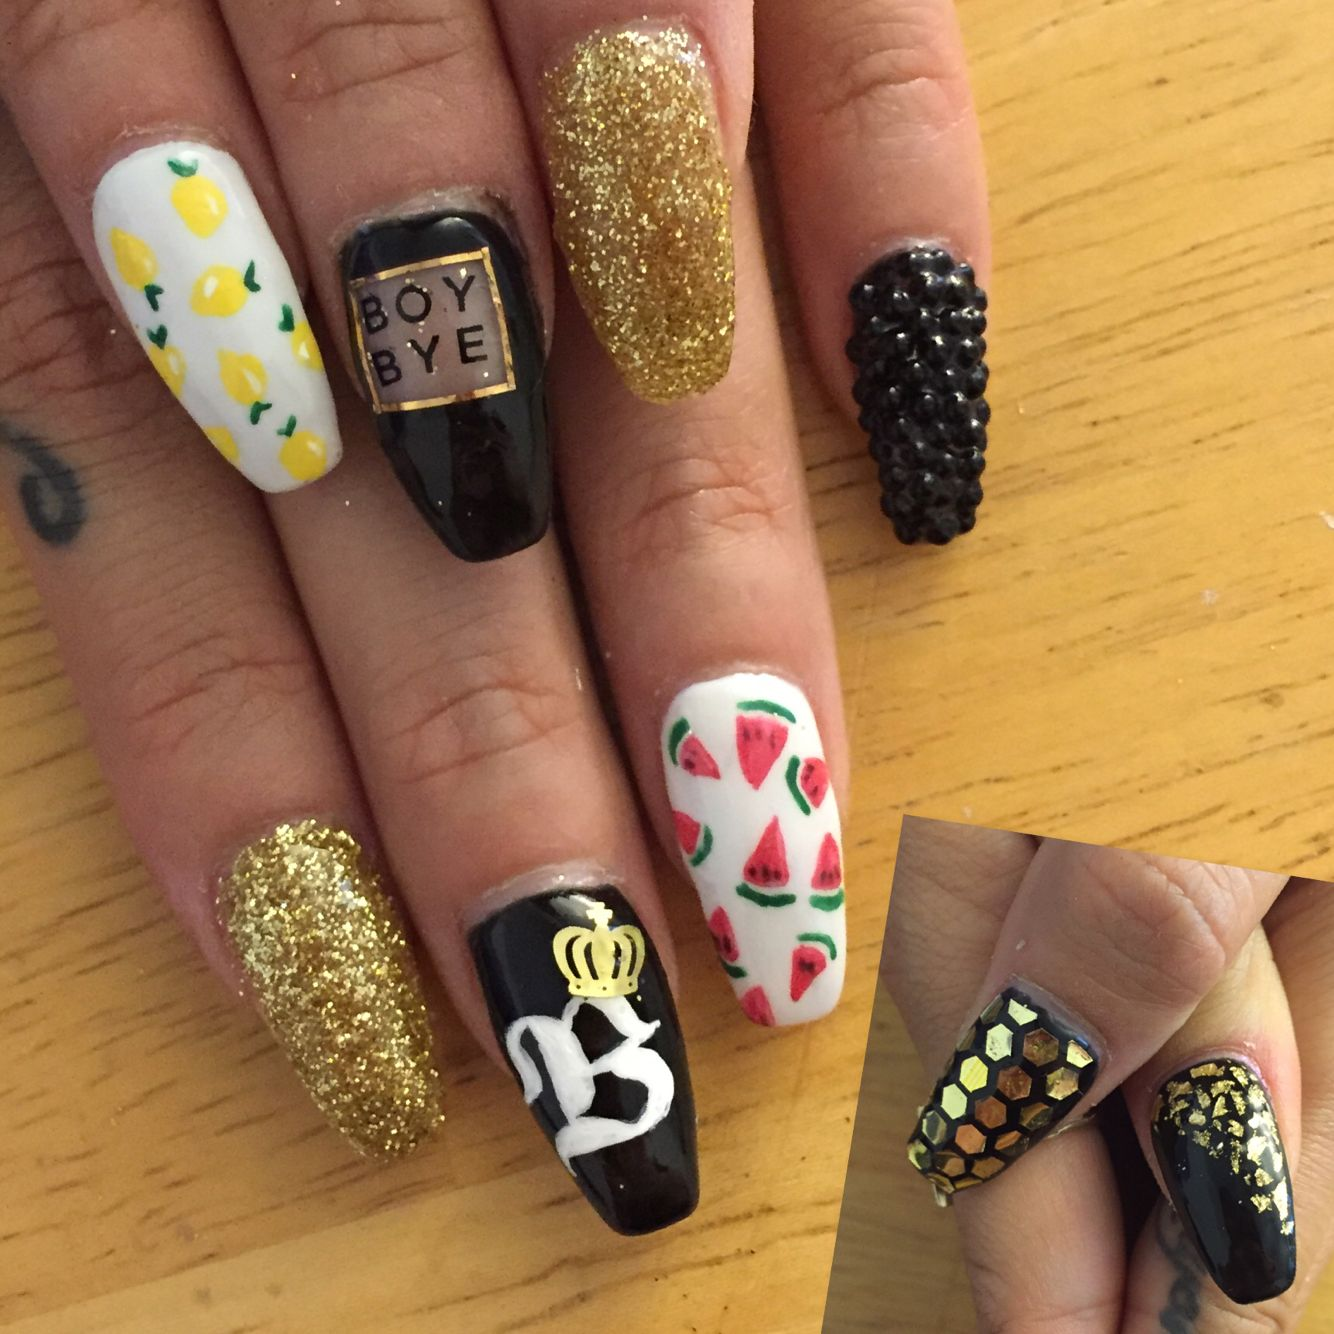 Beyonce Nail Art Nails Pinterest Manicure Makeup And Nail Nail